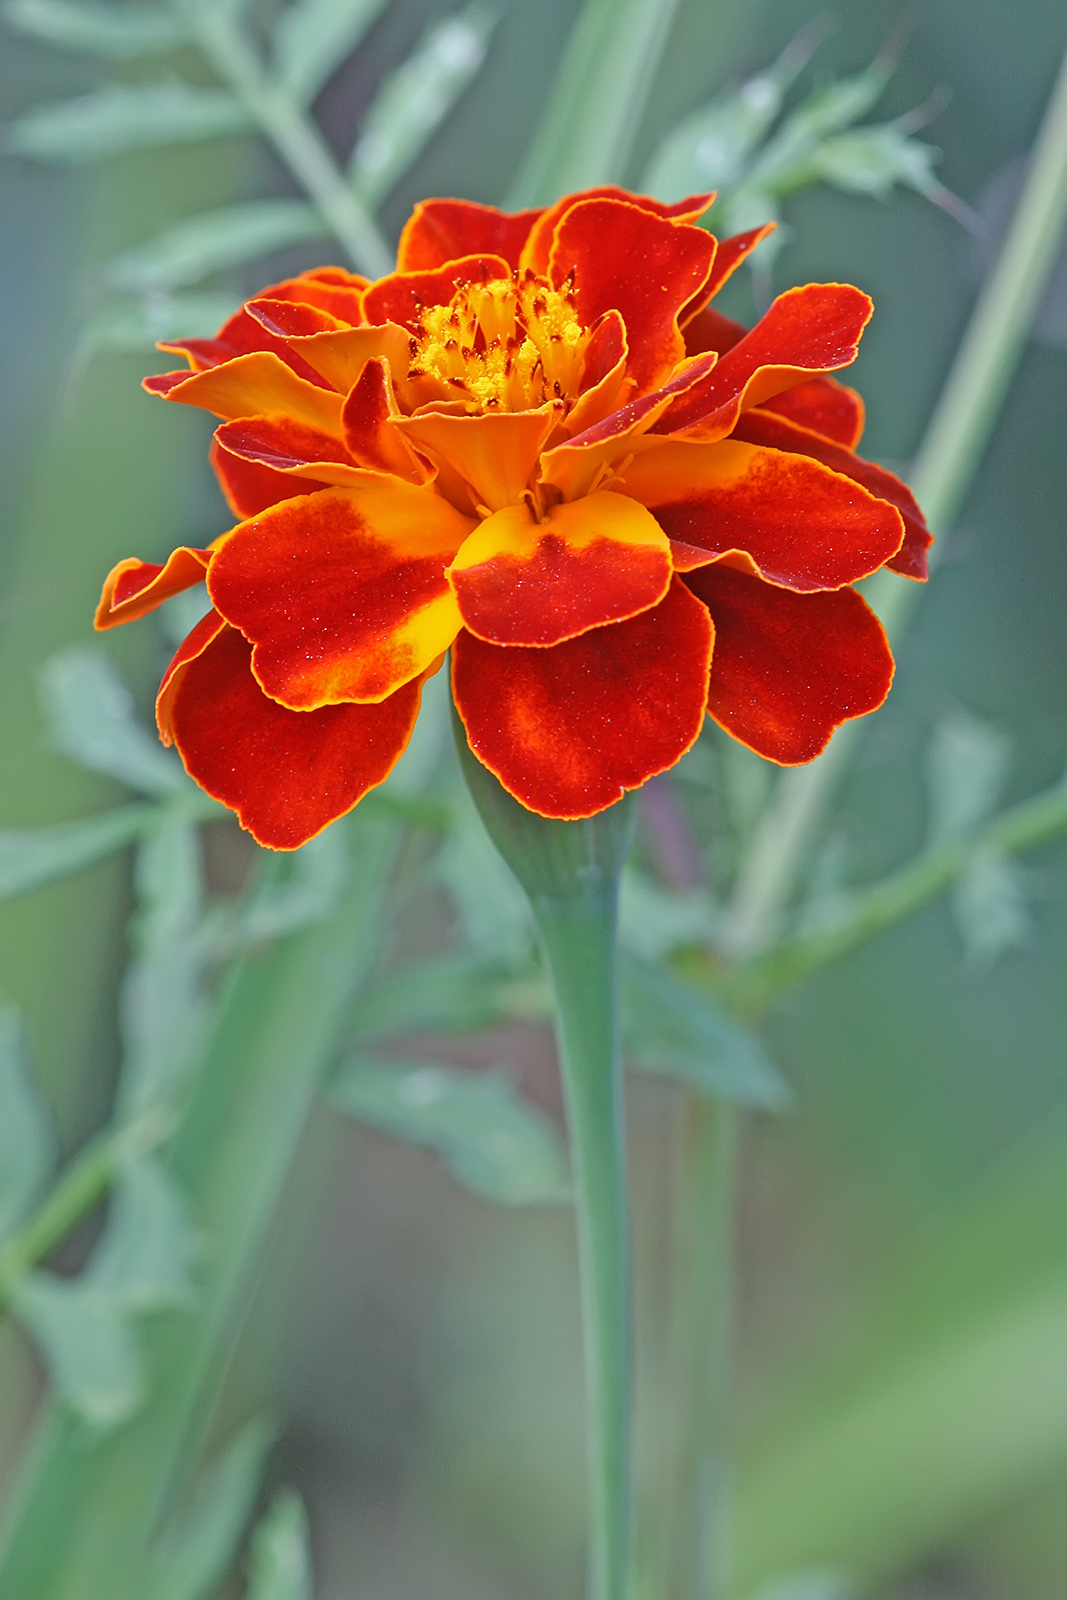 Marigold Flower Different Colour Image Wallpaper